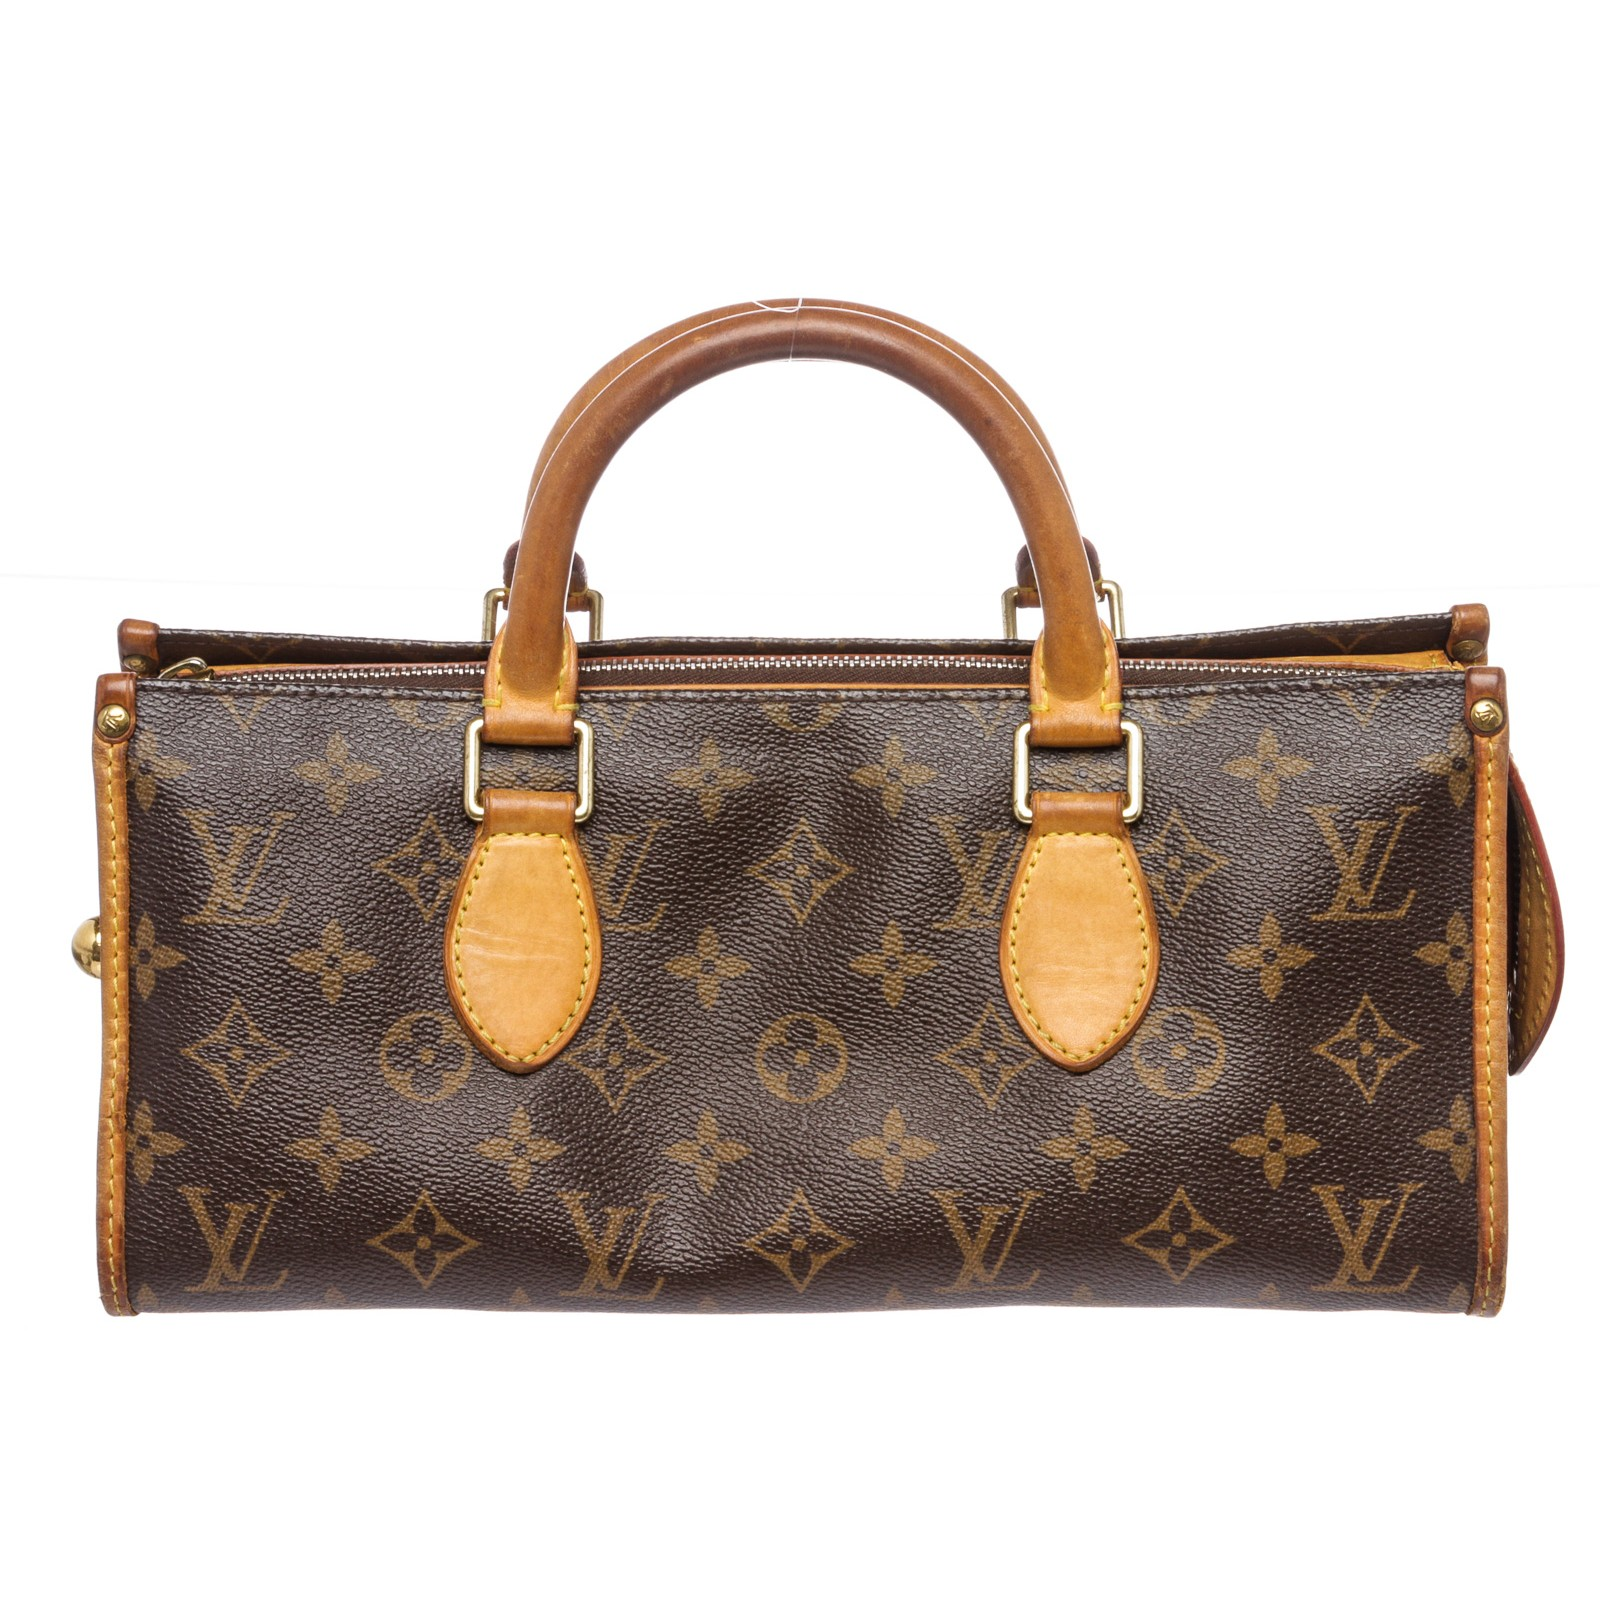 342f6e25bdb6 Shop for Louis Vuitton Monogram Canvas Leather Popincourt Bag ...